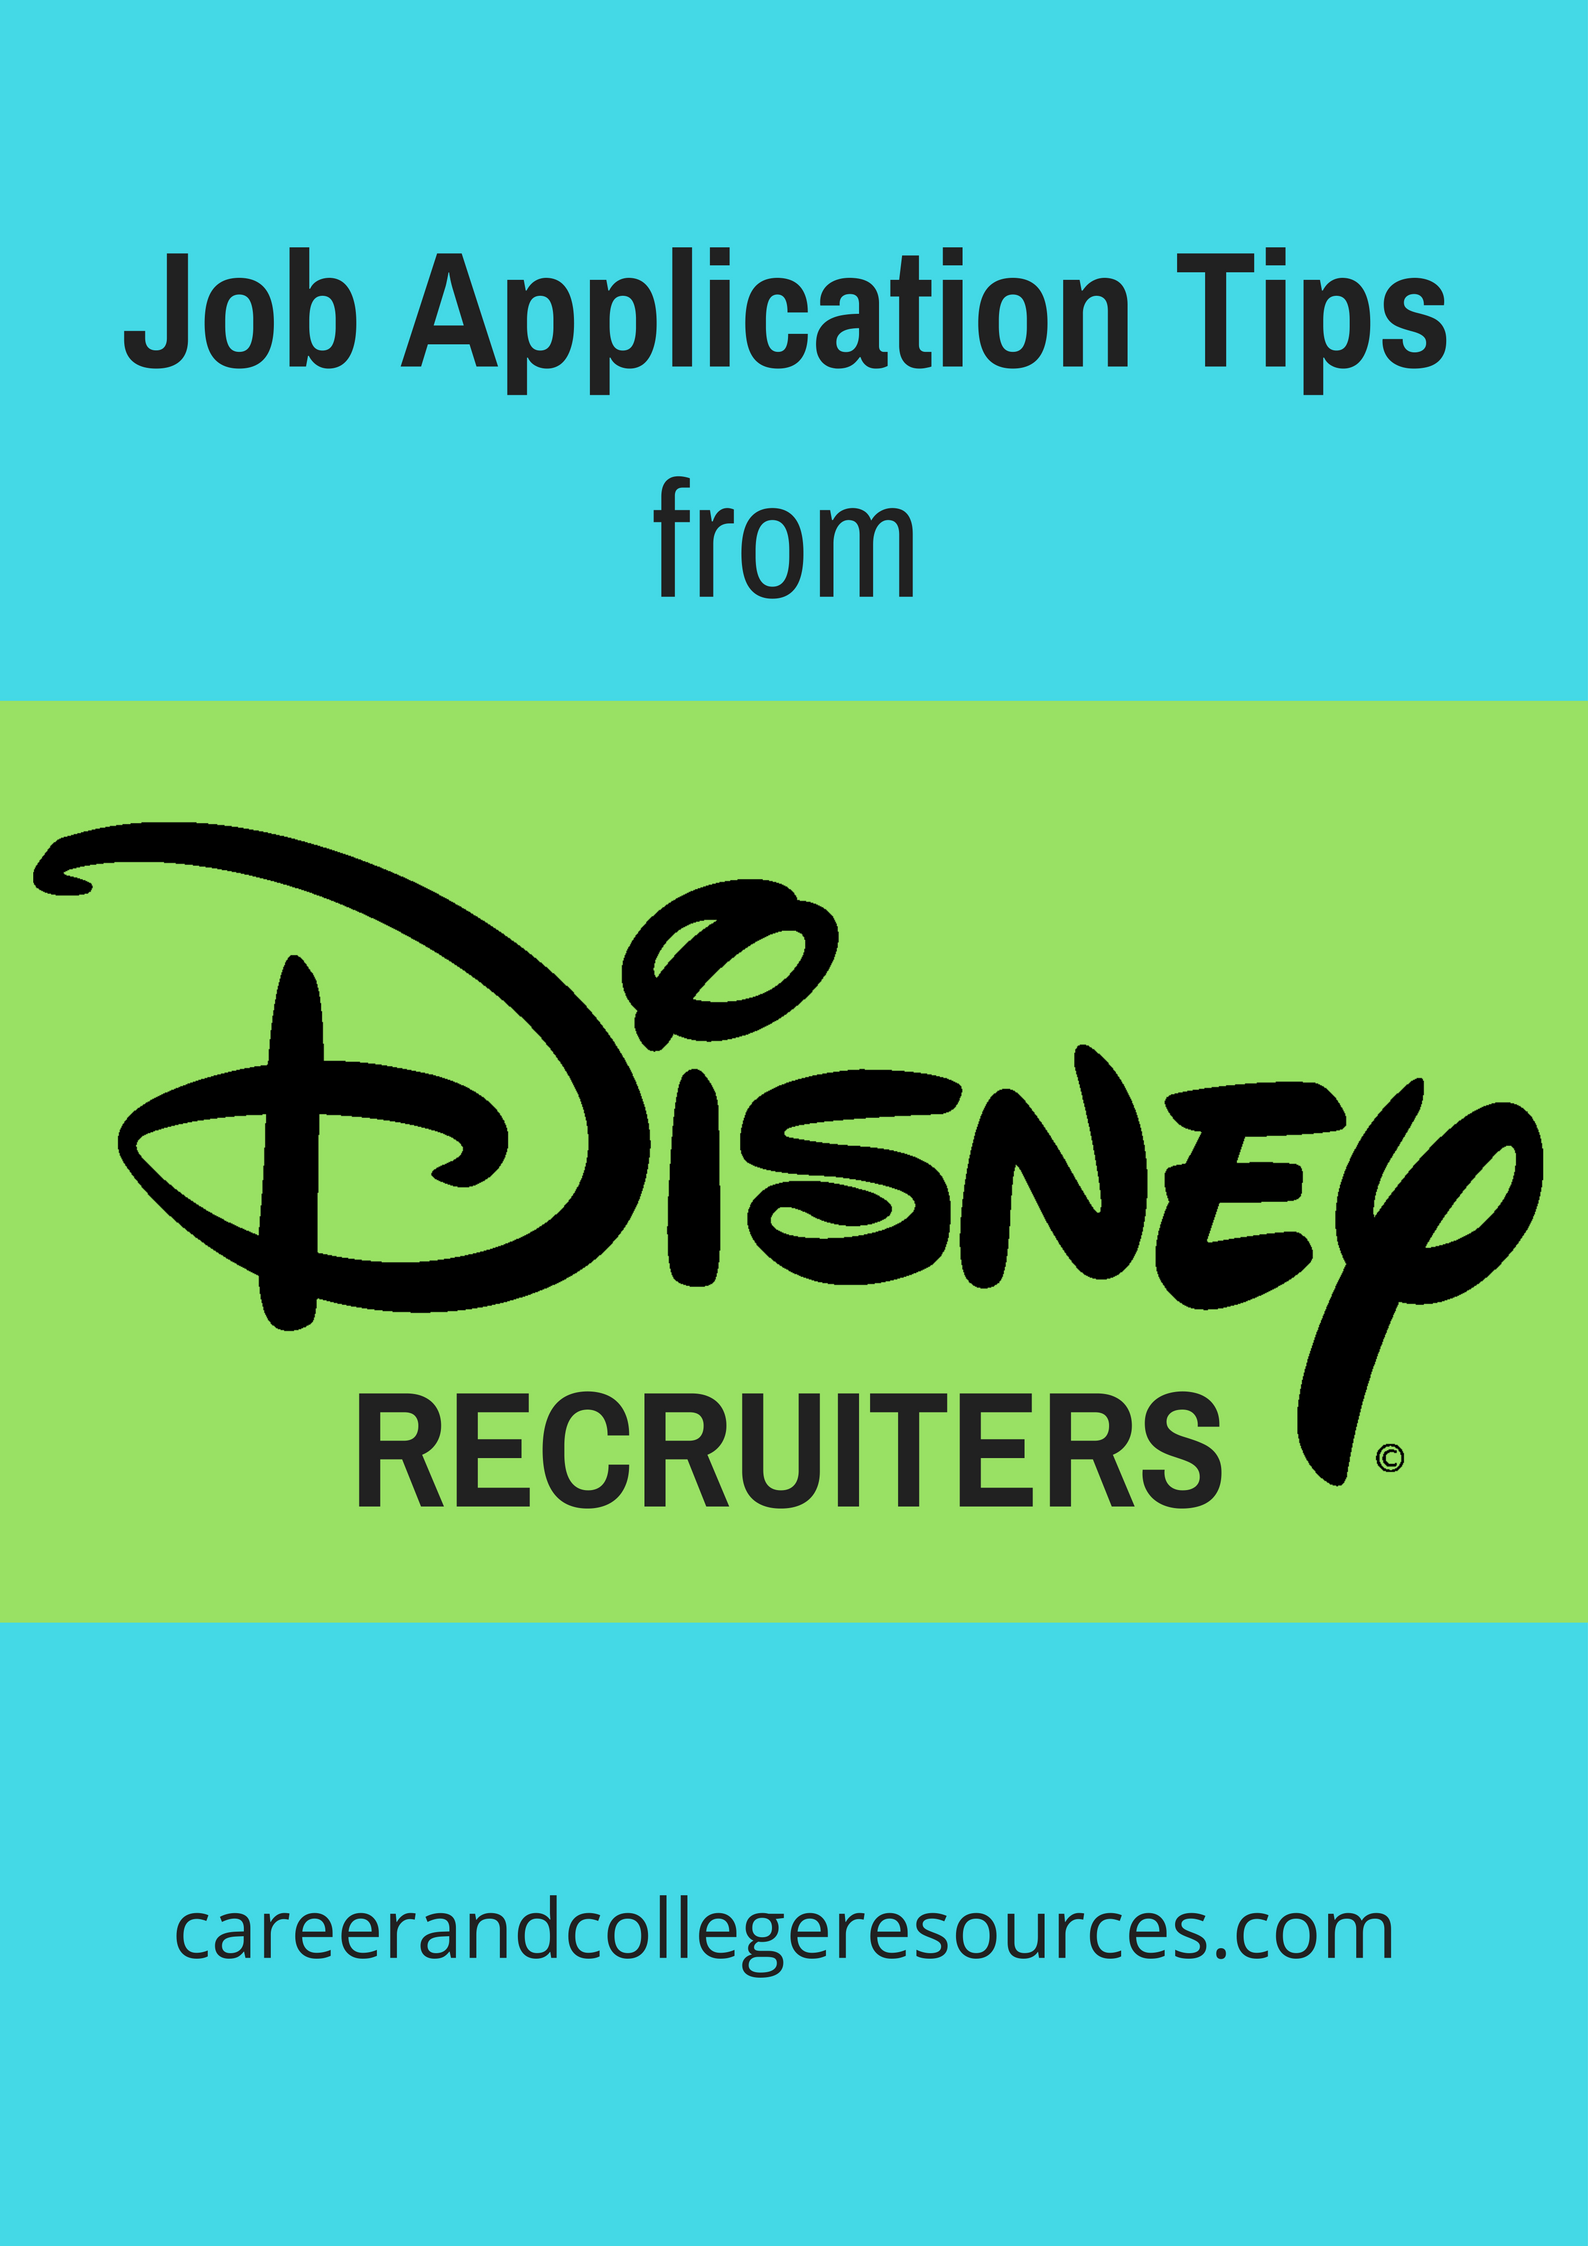 Job Application Tips from Disney Recruiters